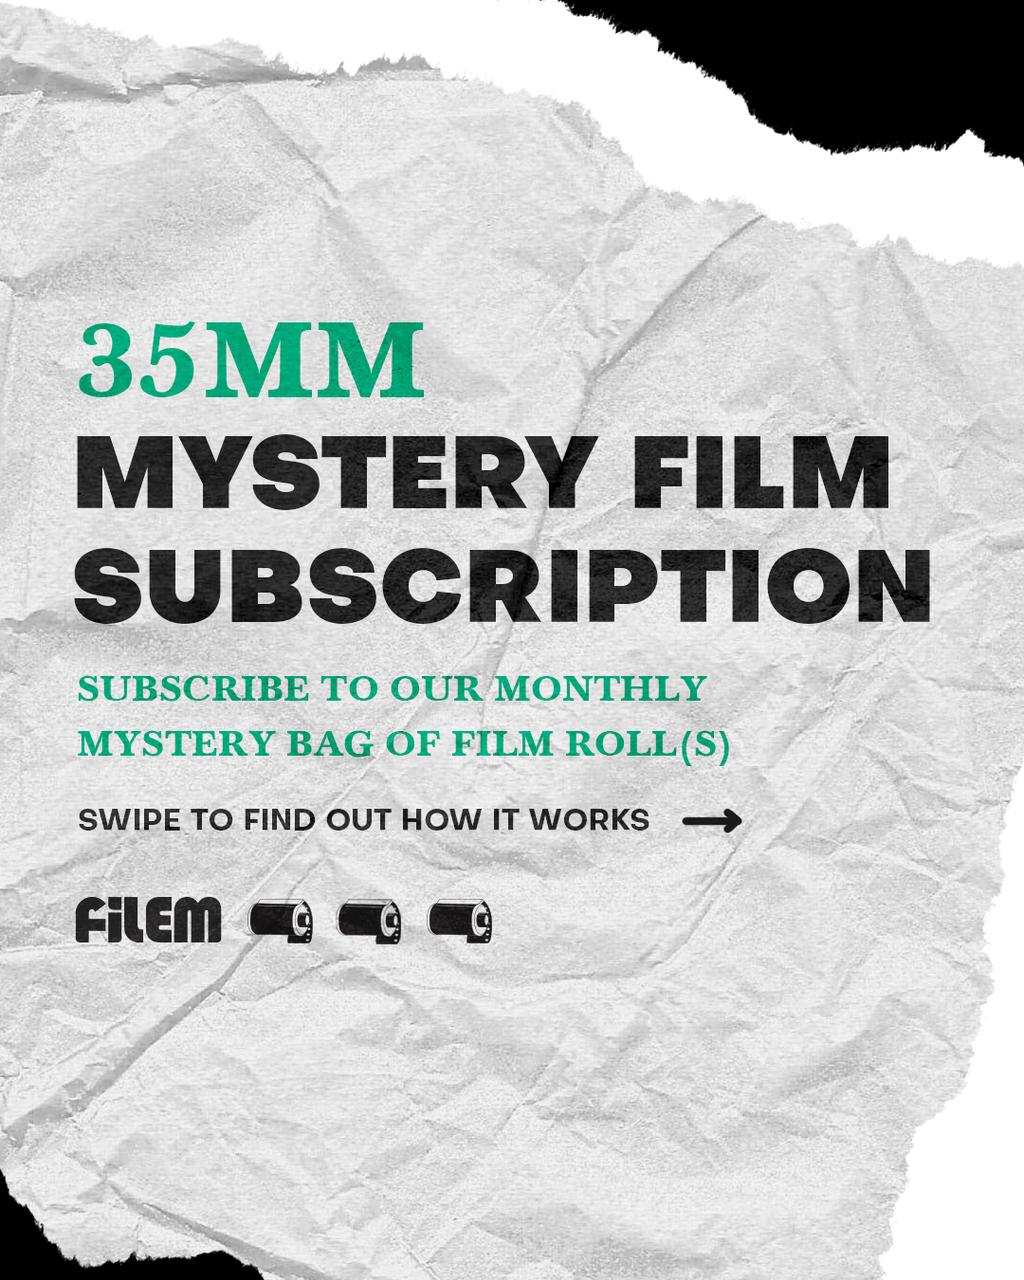 Mystery Film Subscription